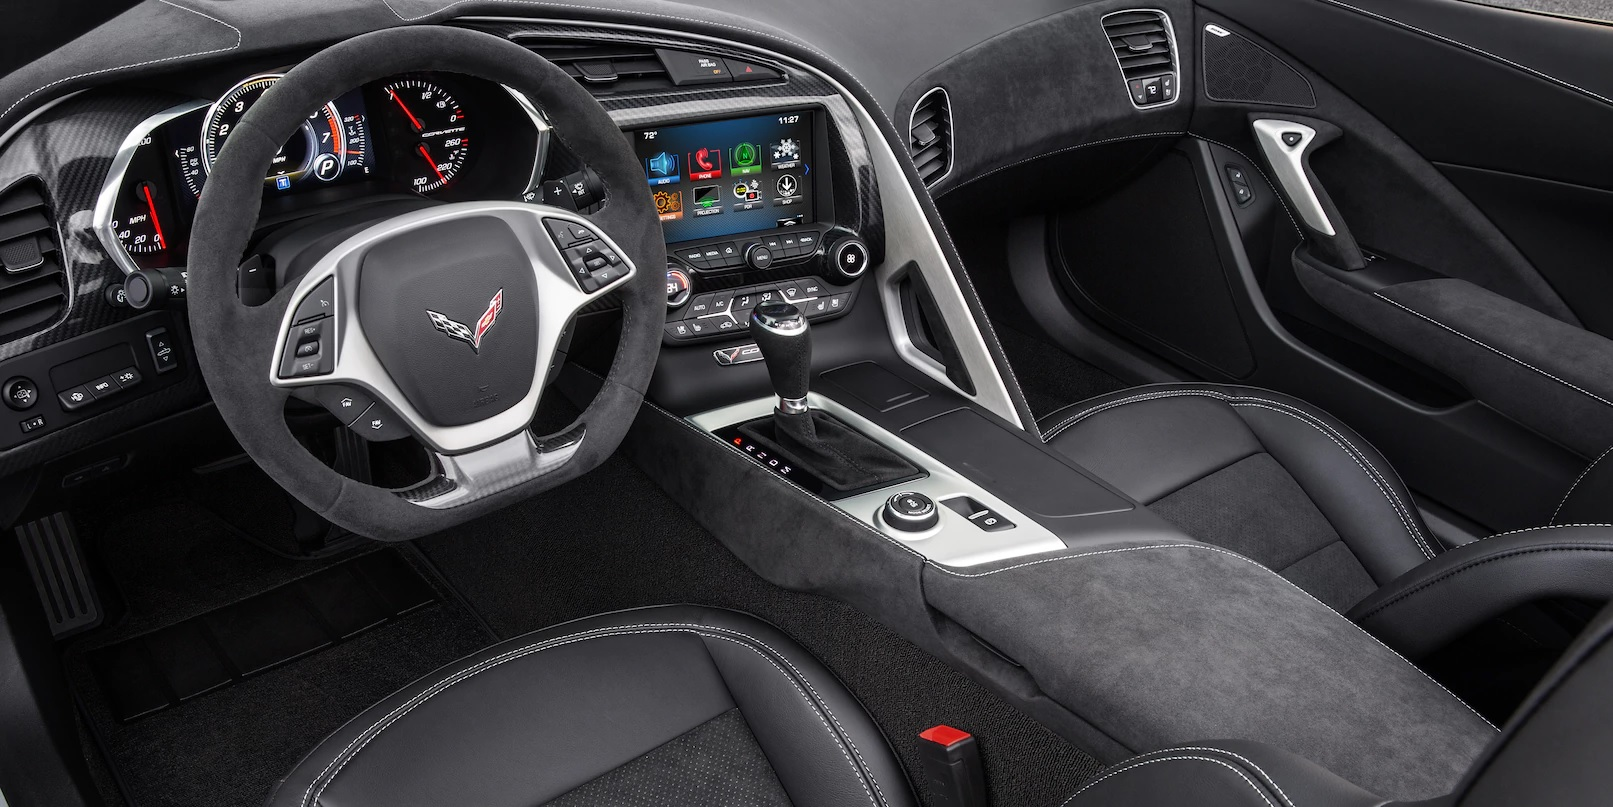 Interior of the 2018 Chevrolet Corvette